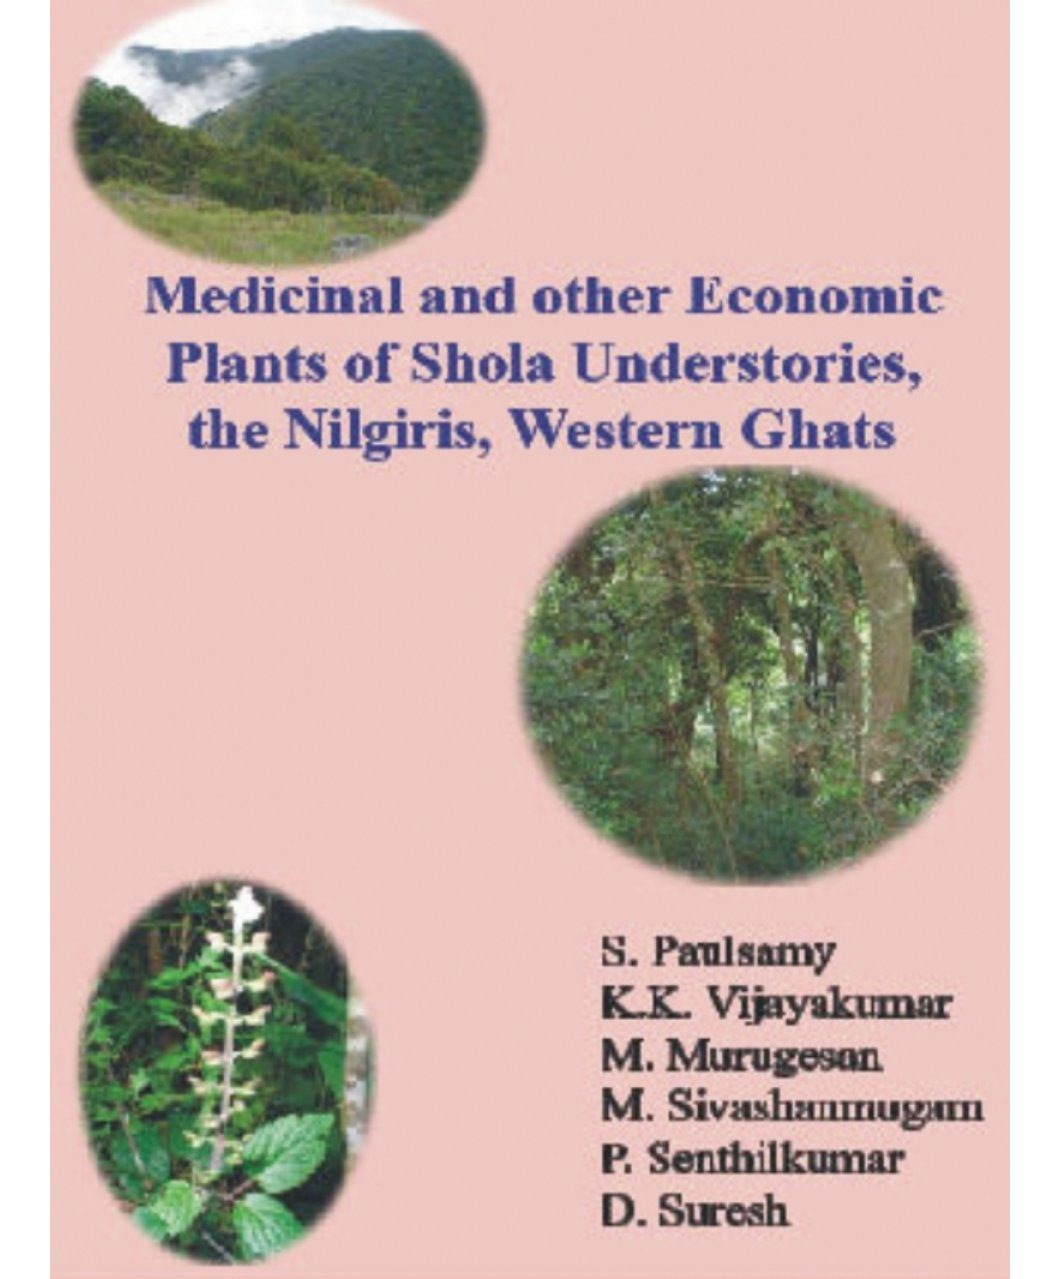 Medicinal and Other Economic Plants of Shola Understories, the Nilgiris, Western Ghats